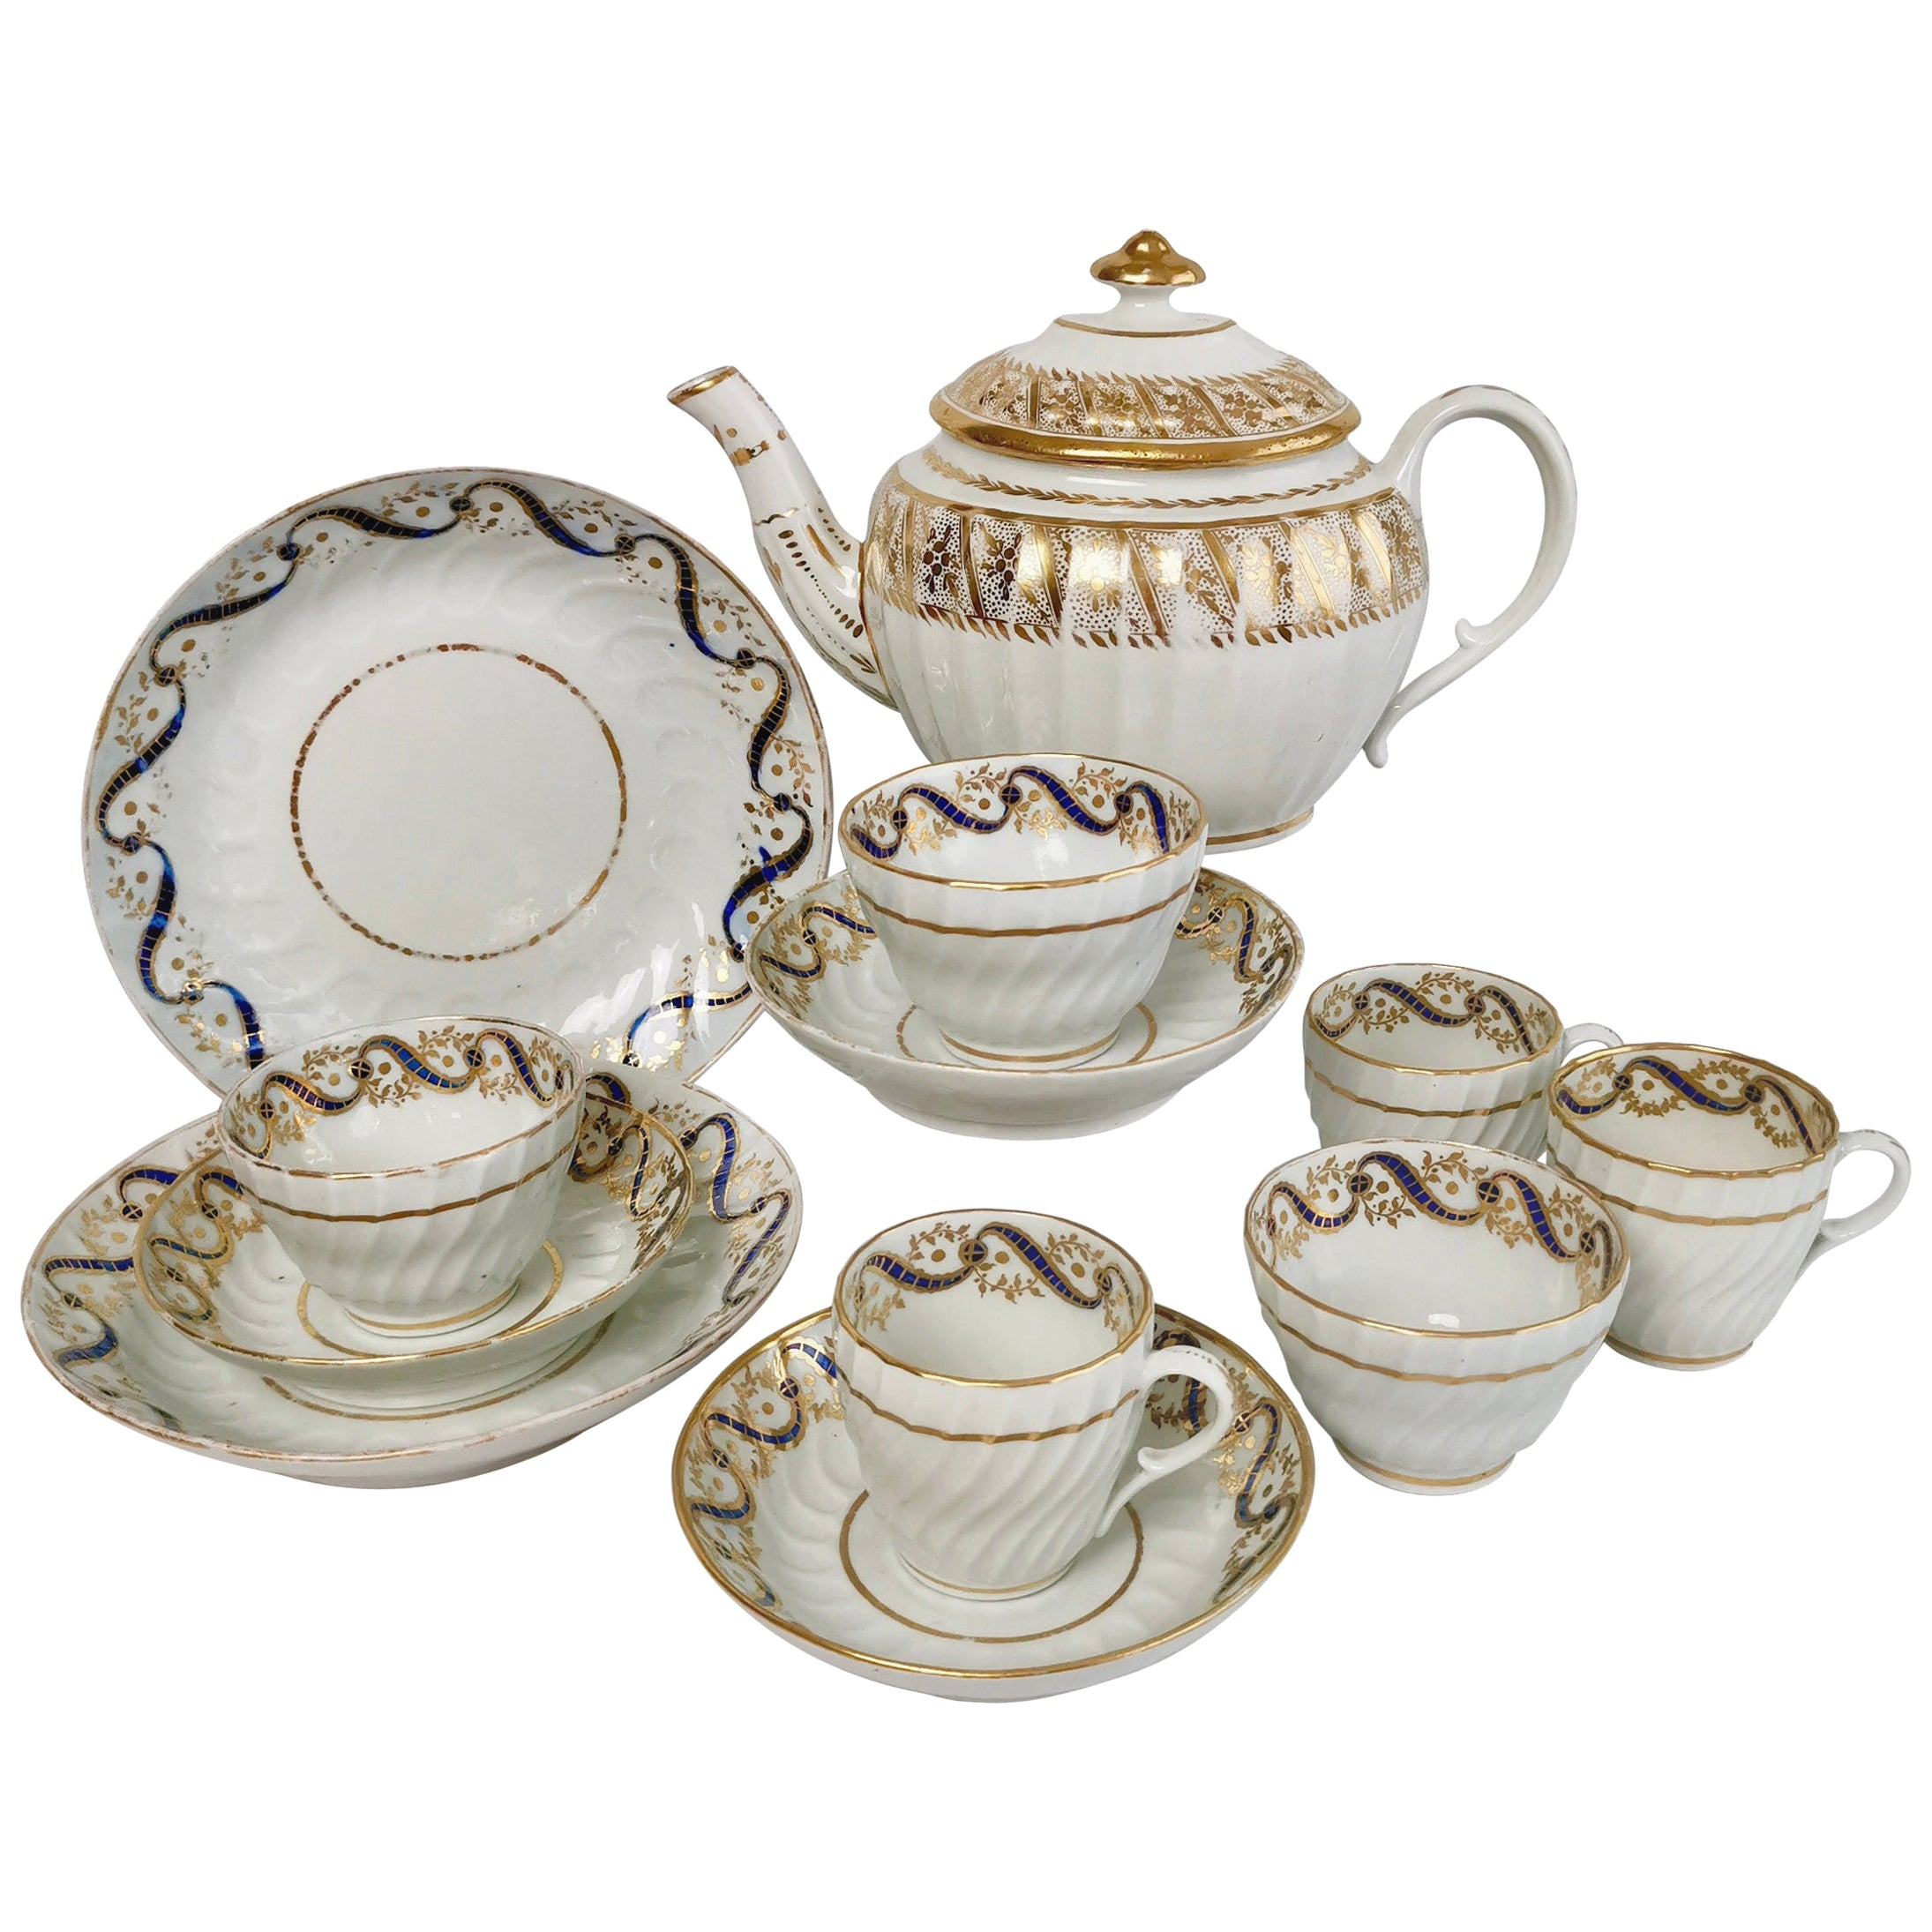 Coalport John Rose Porcelain Tea Service, White and Gilt, Georgian, circa 1795